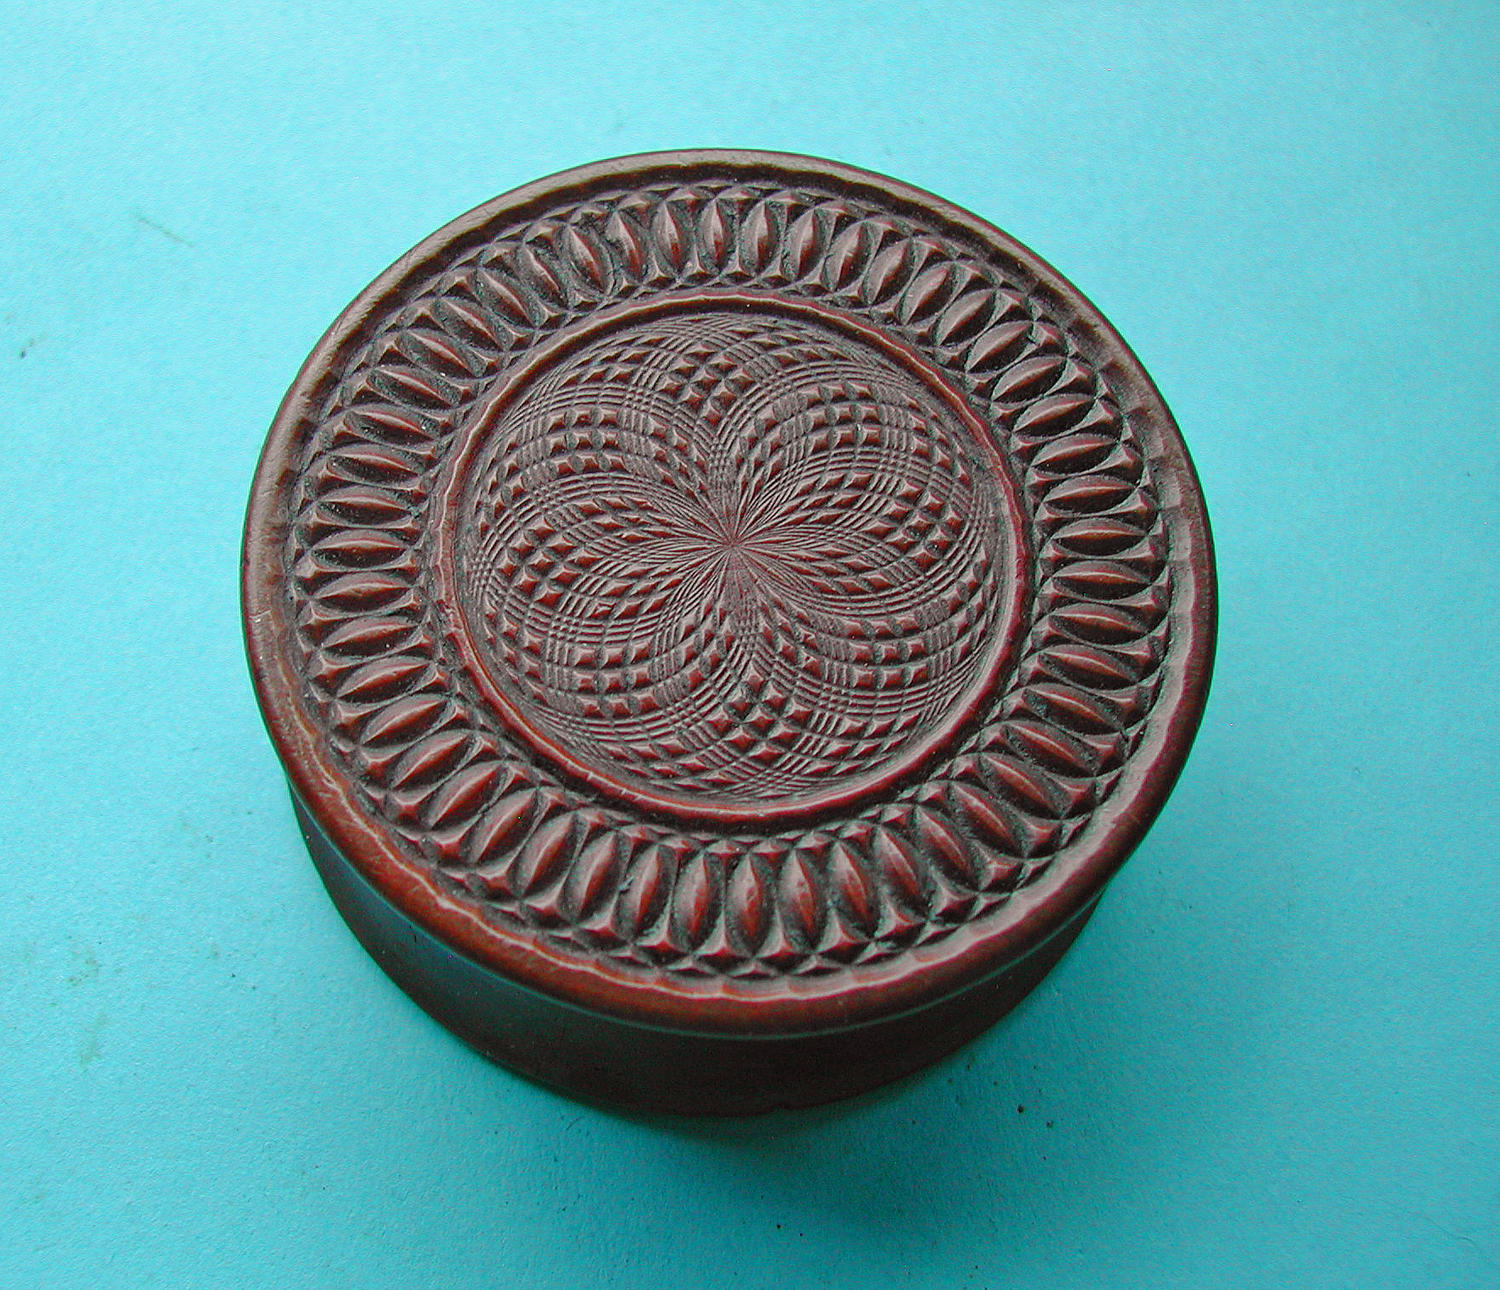 Antique 19thc Treen Engine Turned Snuff Box.  English. C1840-60.